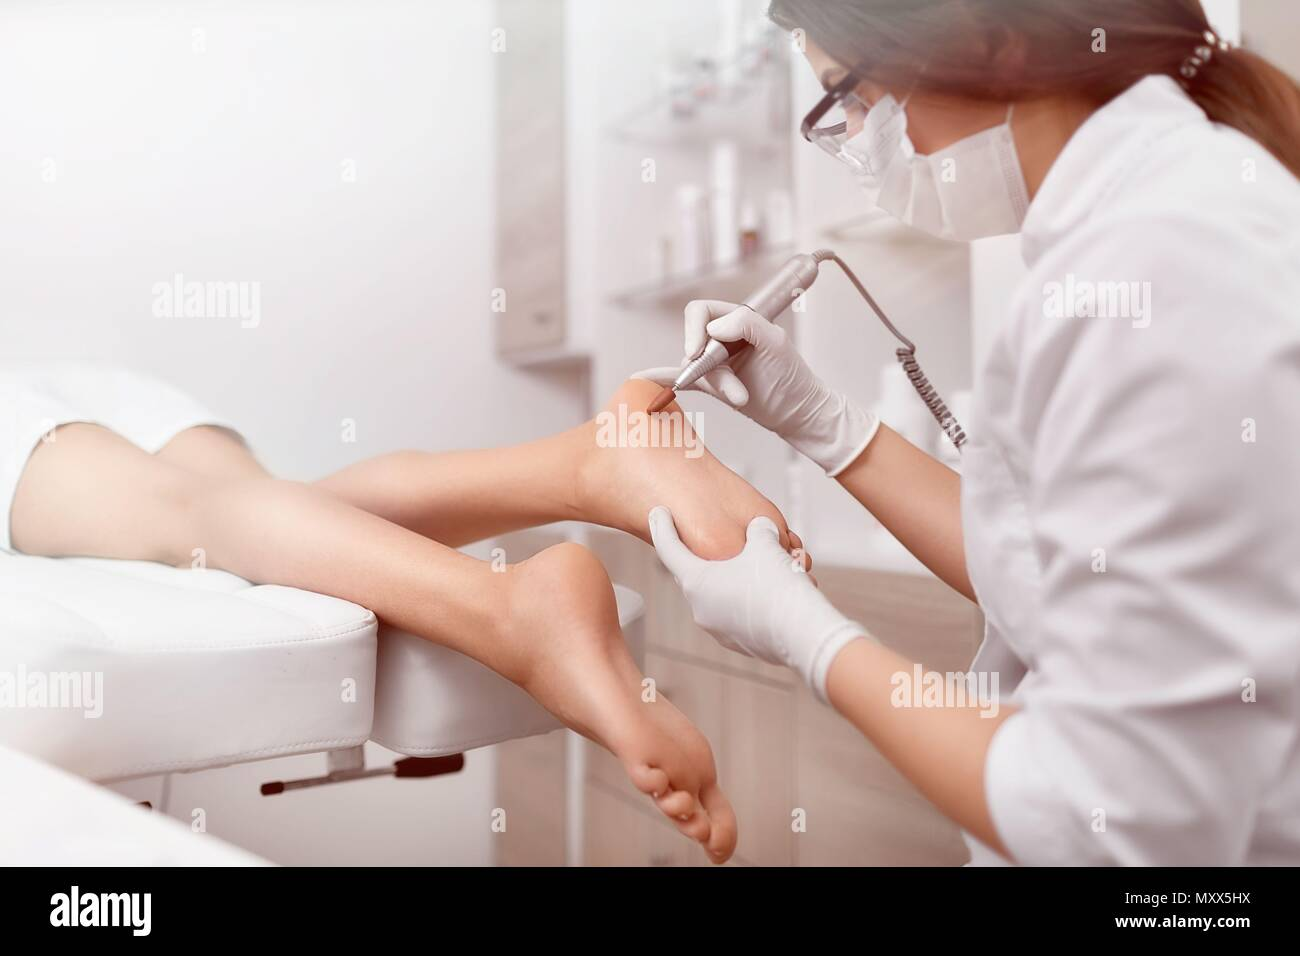 Podiatrist making procedure for client foot with special equipme - Stock Image